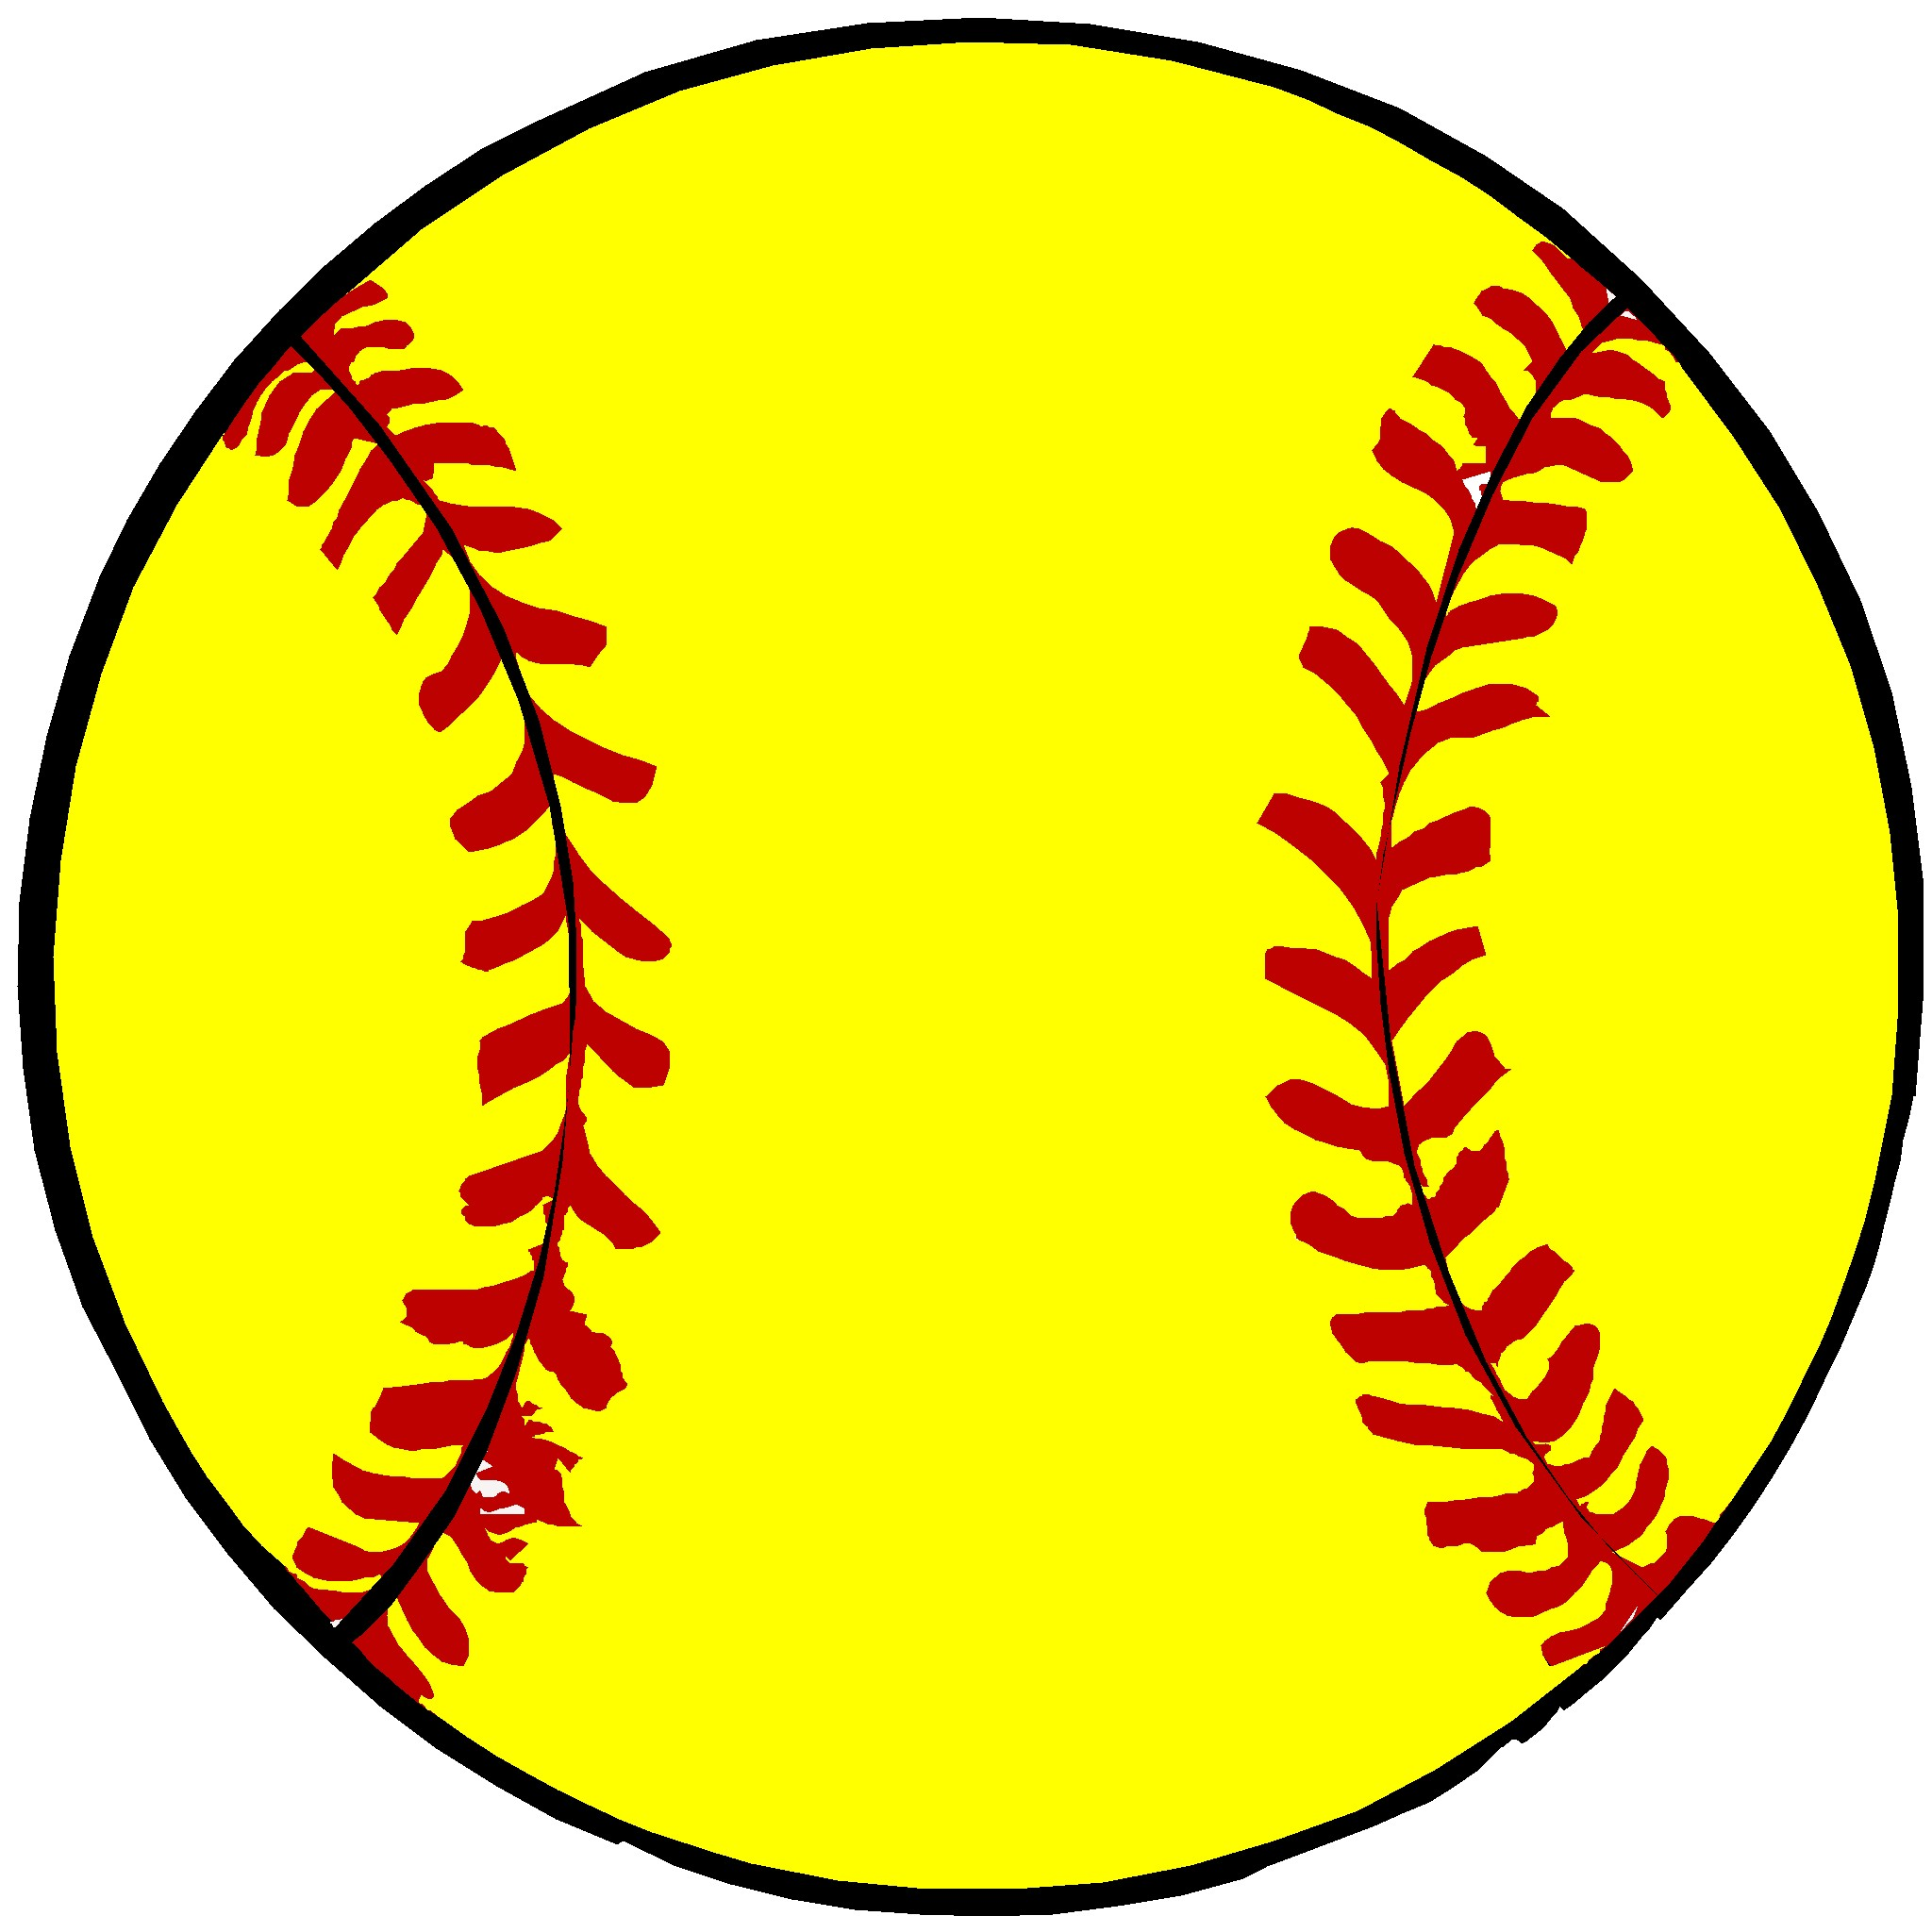 Softball clipart cartoon. Best clip art clipartion